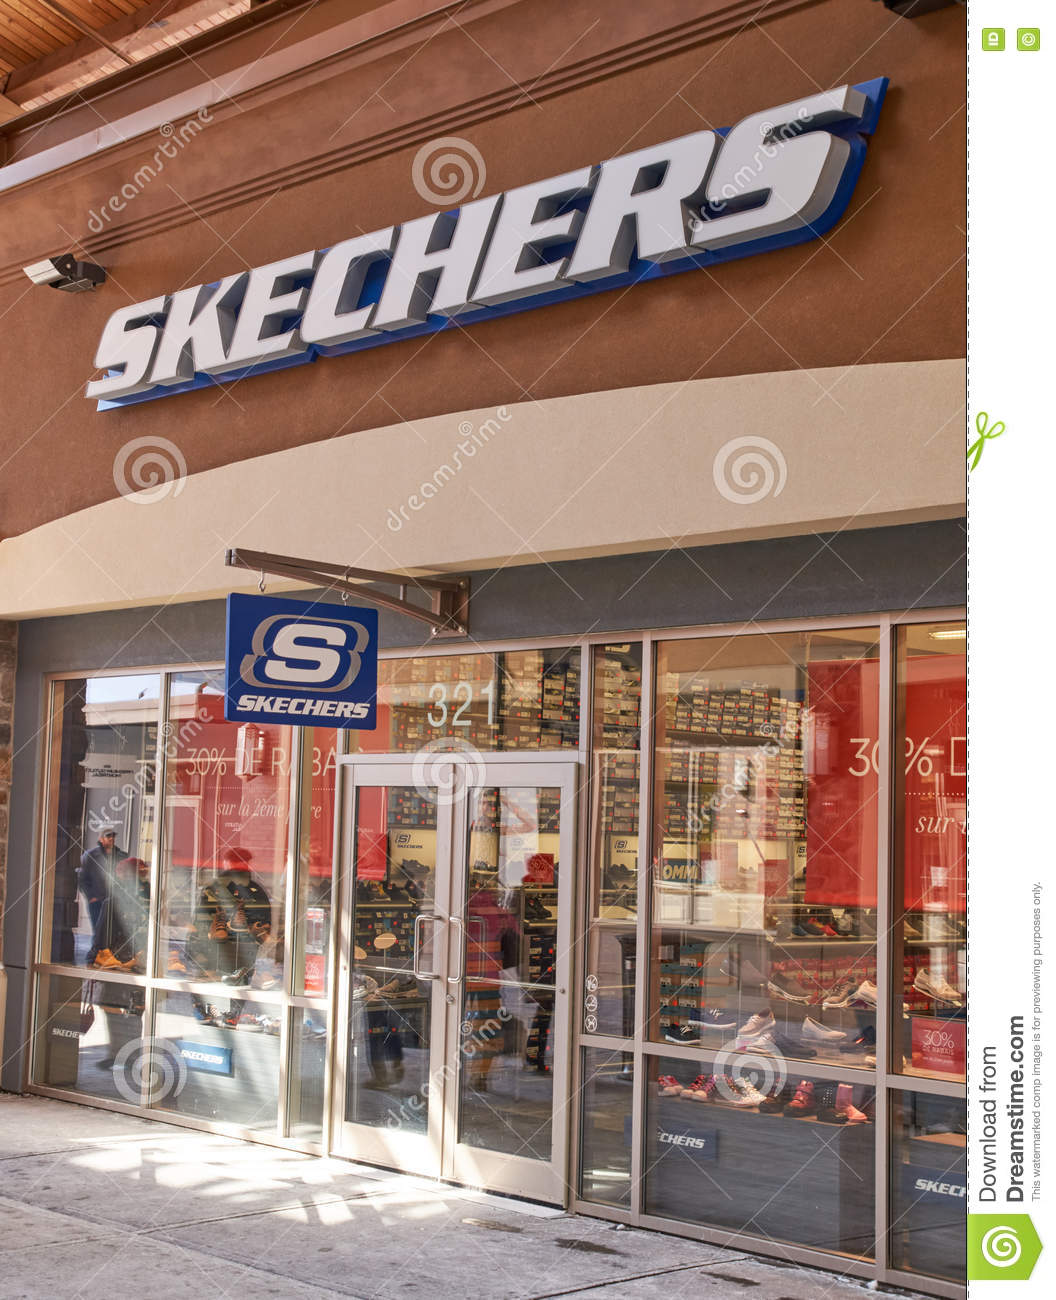 a16aebe5cbc4 Skechers outlet editorial stock image. Image of logo - 67924834